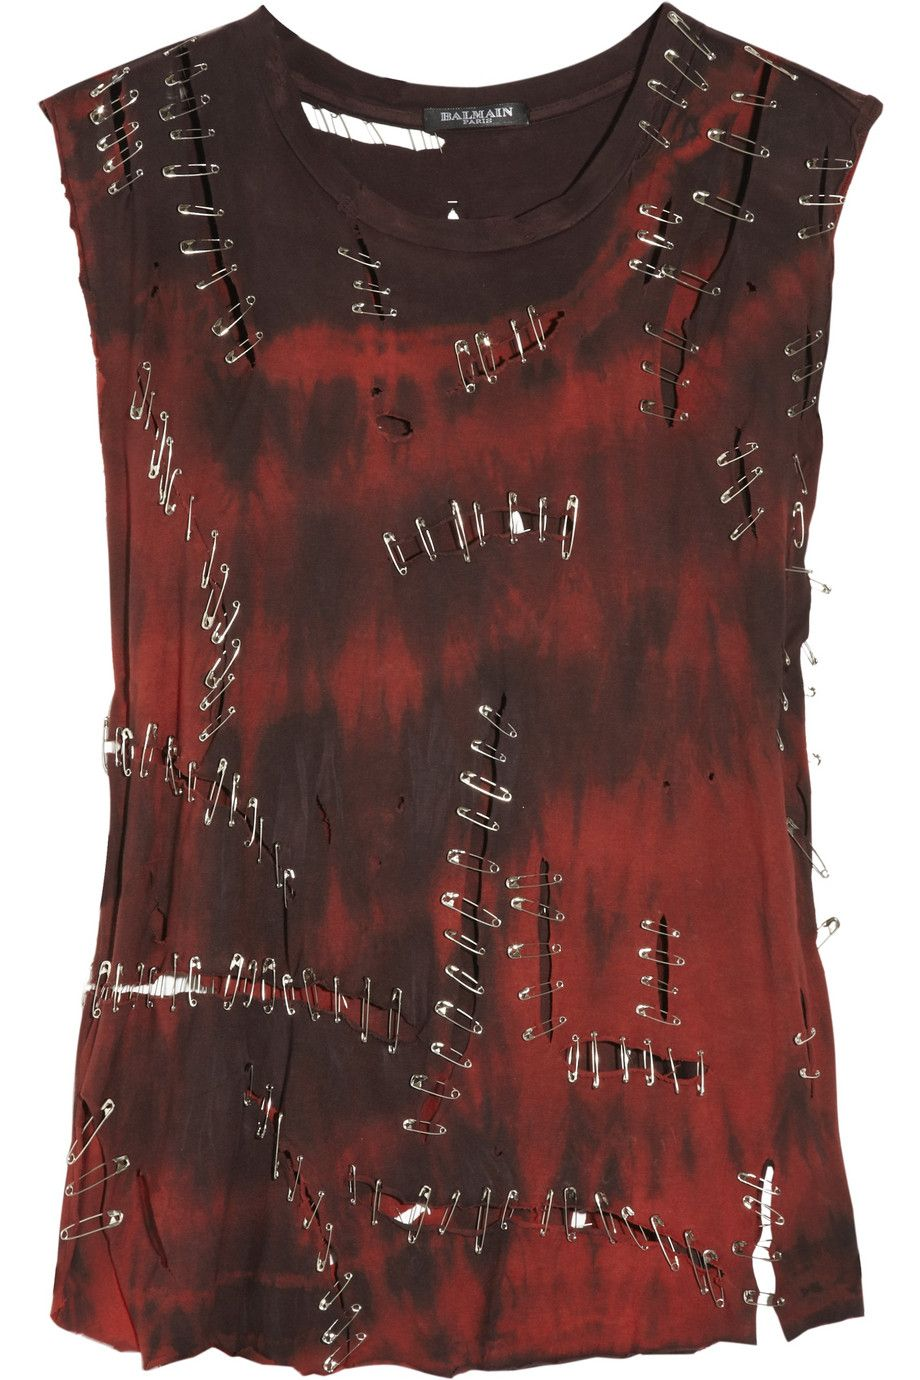 f9cf003b6d639 BALMAIN Red and Black Distressed Safety pin cotton tank top-with a pair of  combat boots and either black leather pants or distressed jeans with a  chain ...